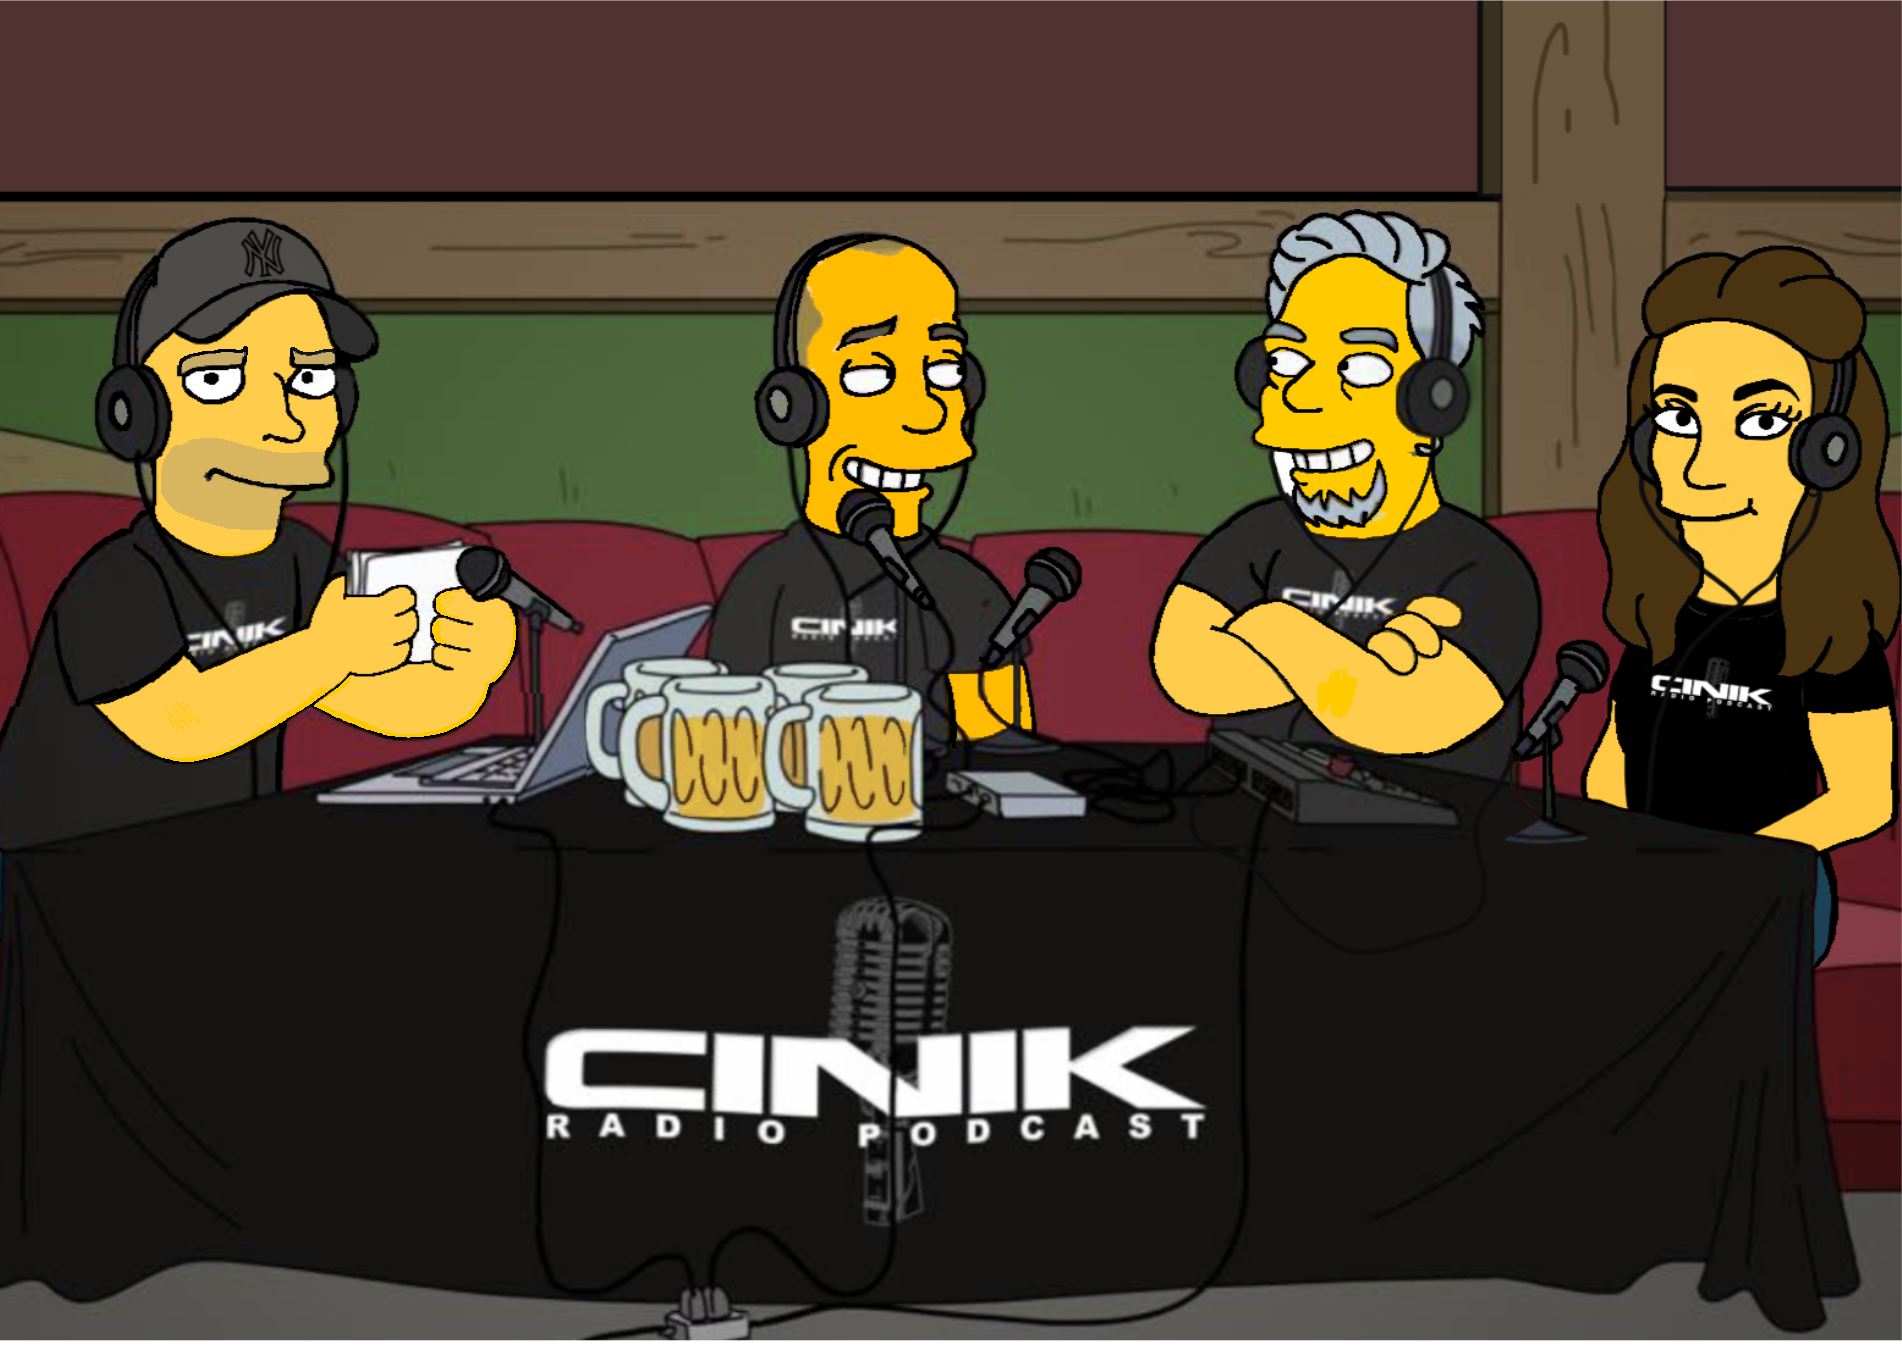 ciniksimpsons.png